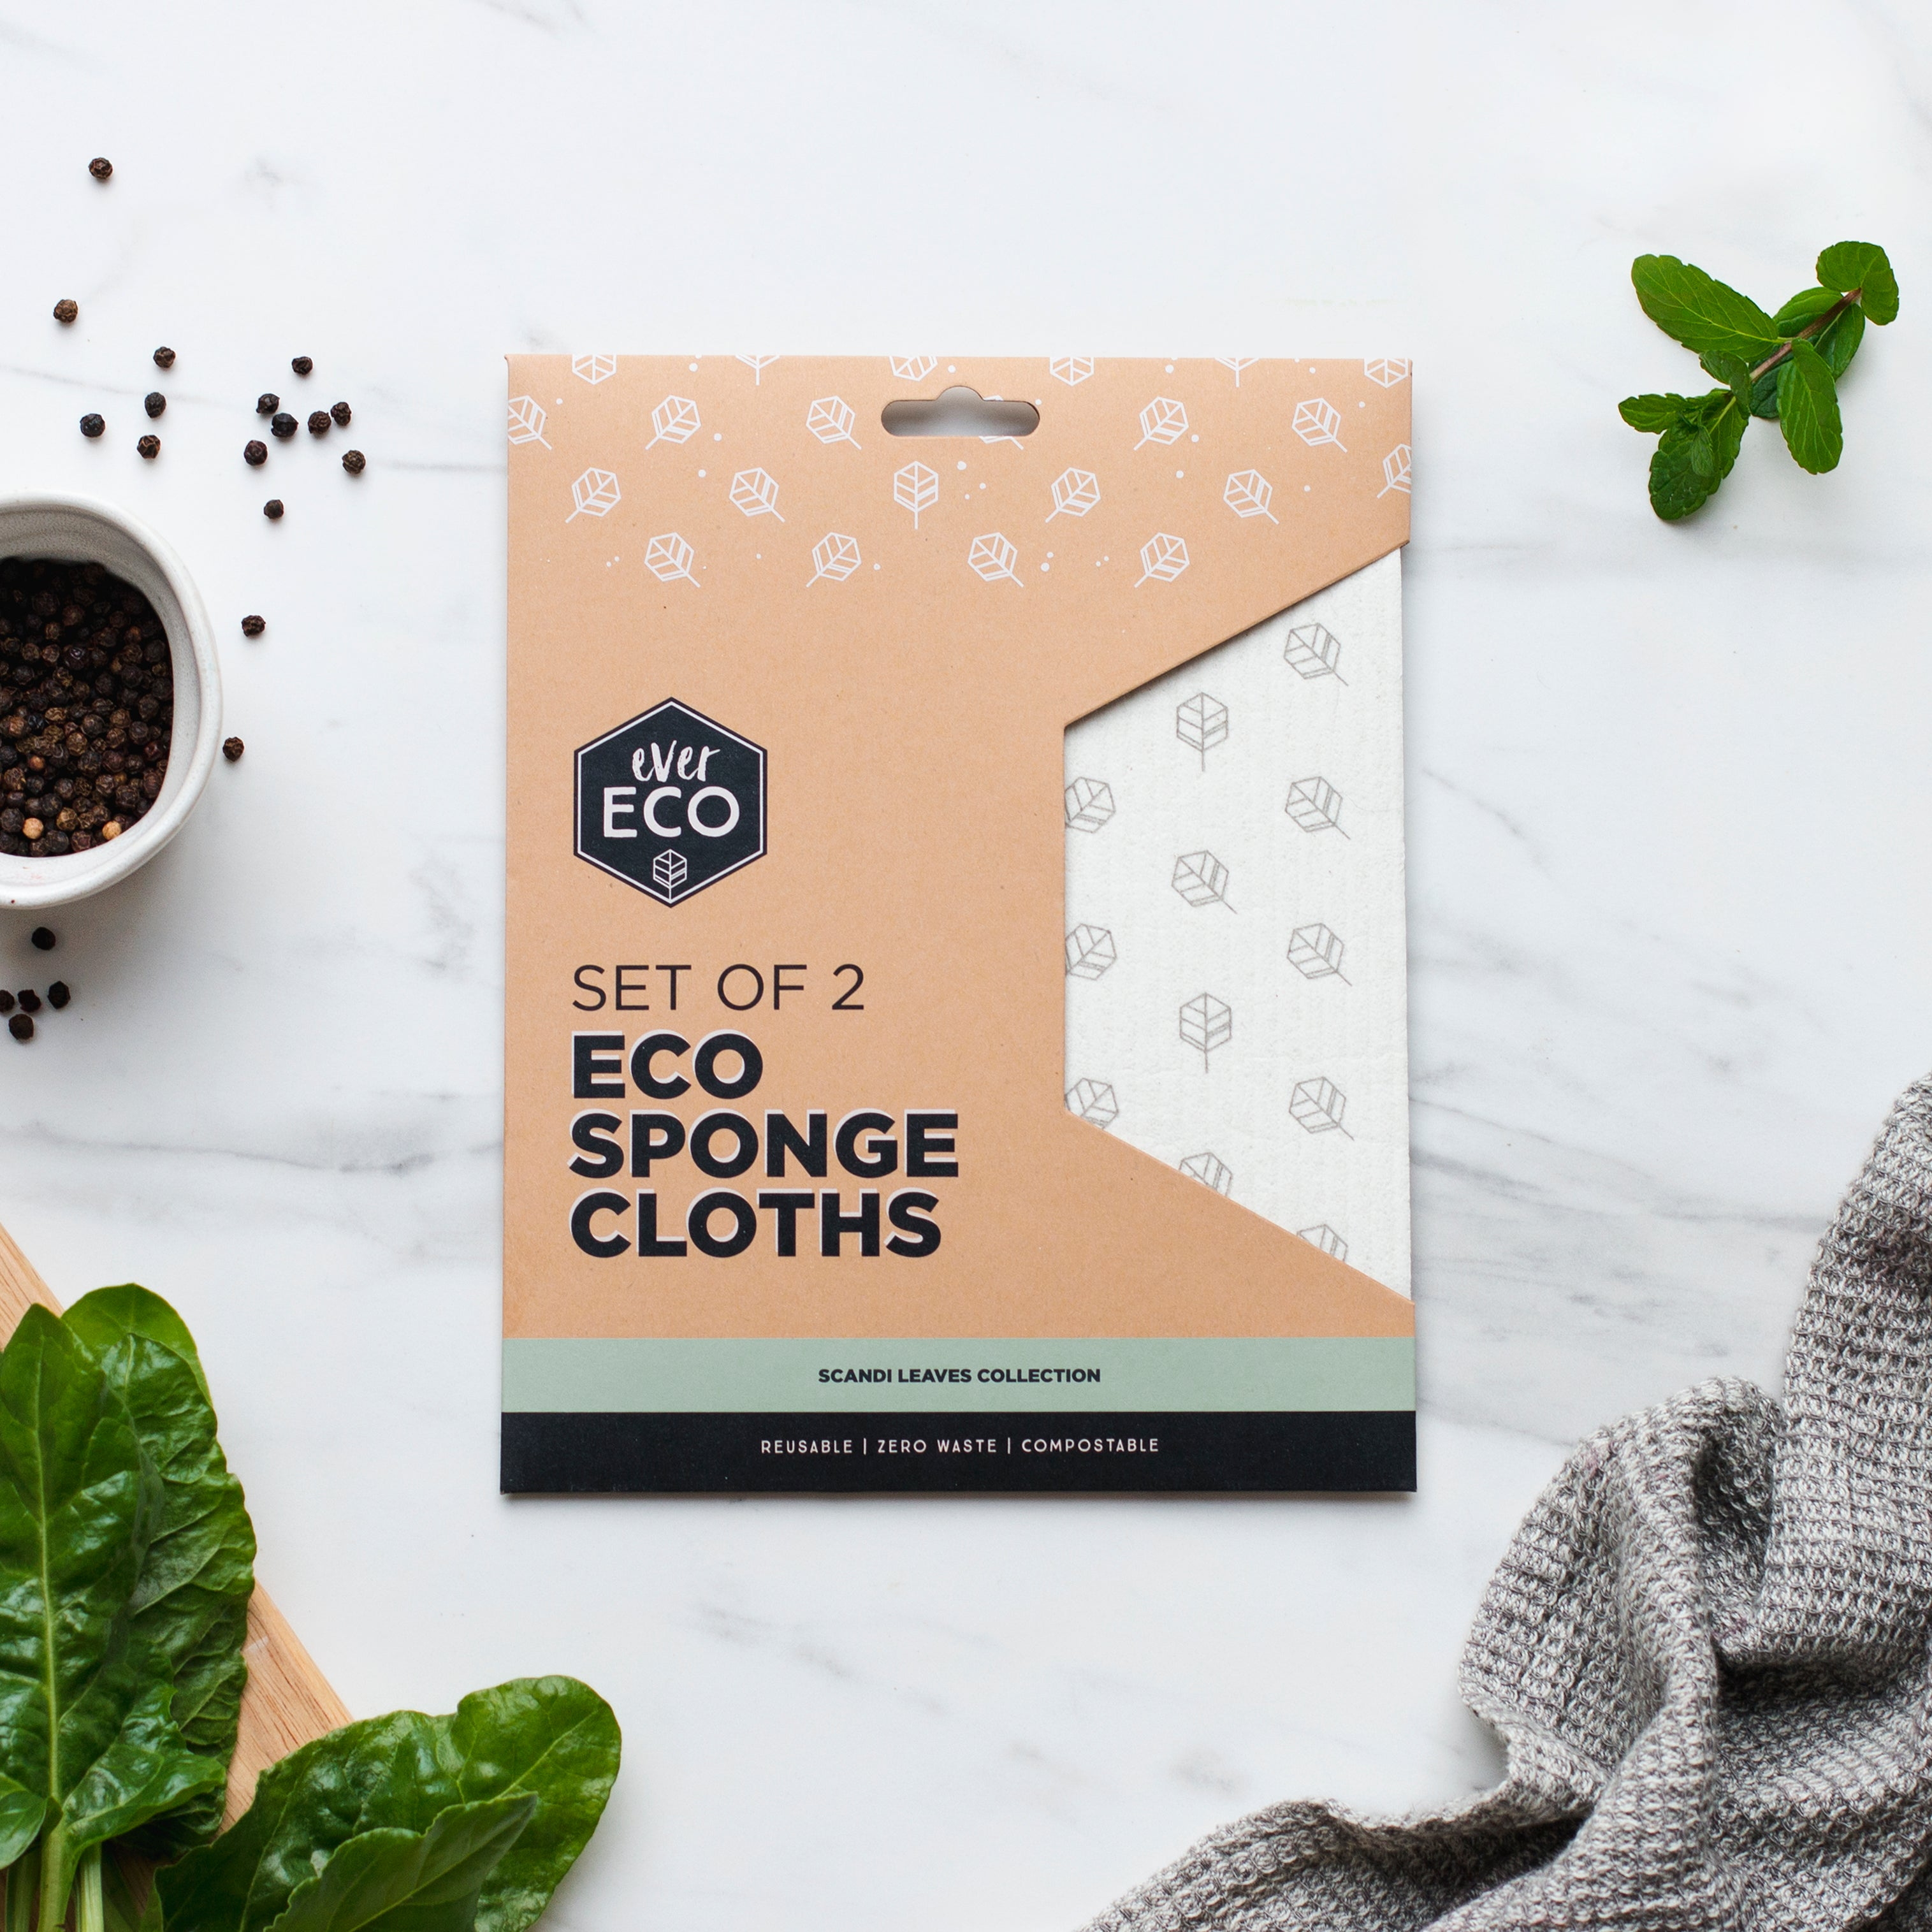 Ever Eco Sponge Cloths Scandi Leaves - 2 Pack